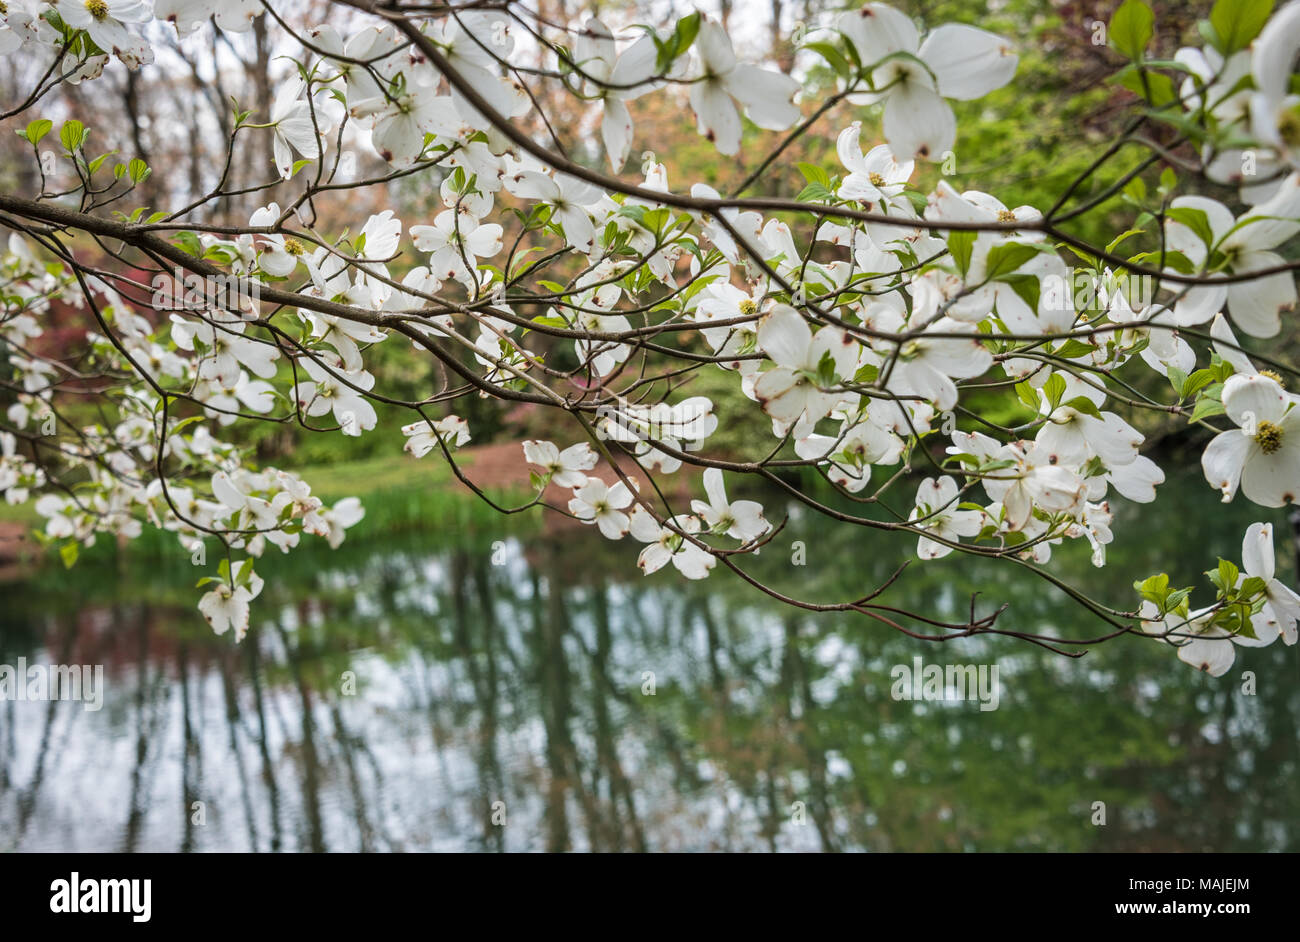 Dogwood Festival Stock Photos & Dogwood Festival Stock Images - Alamy